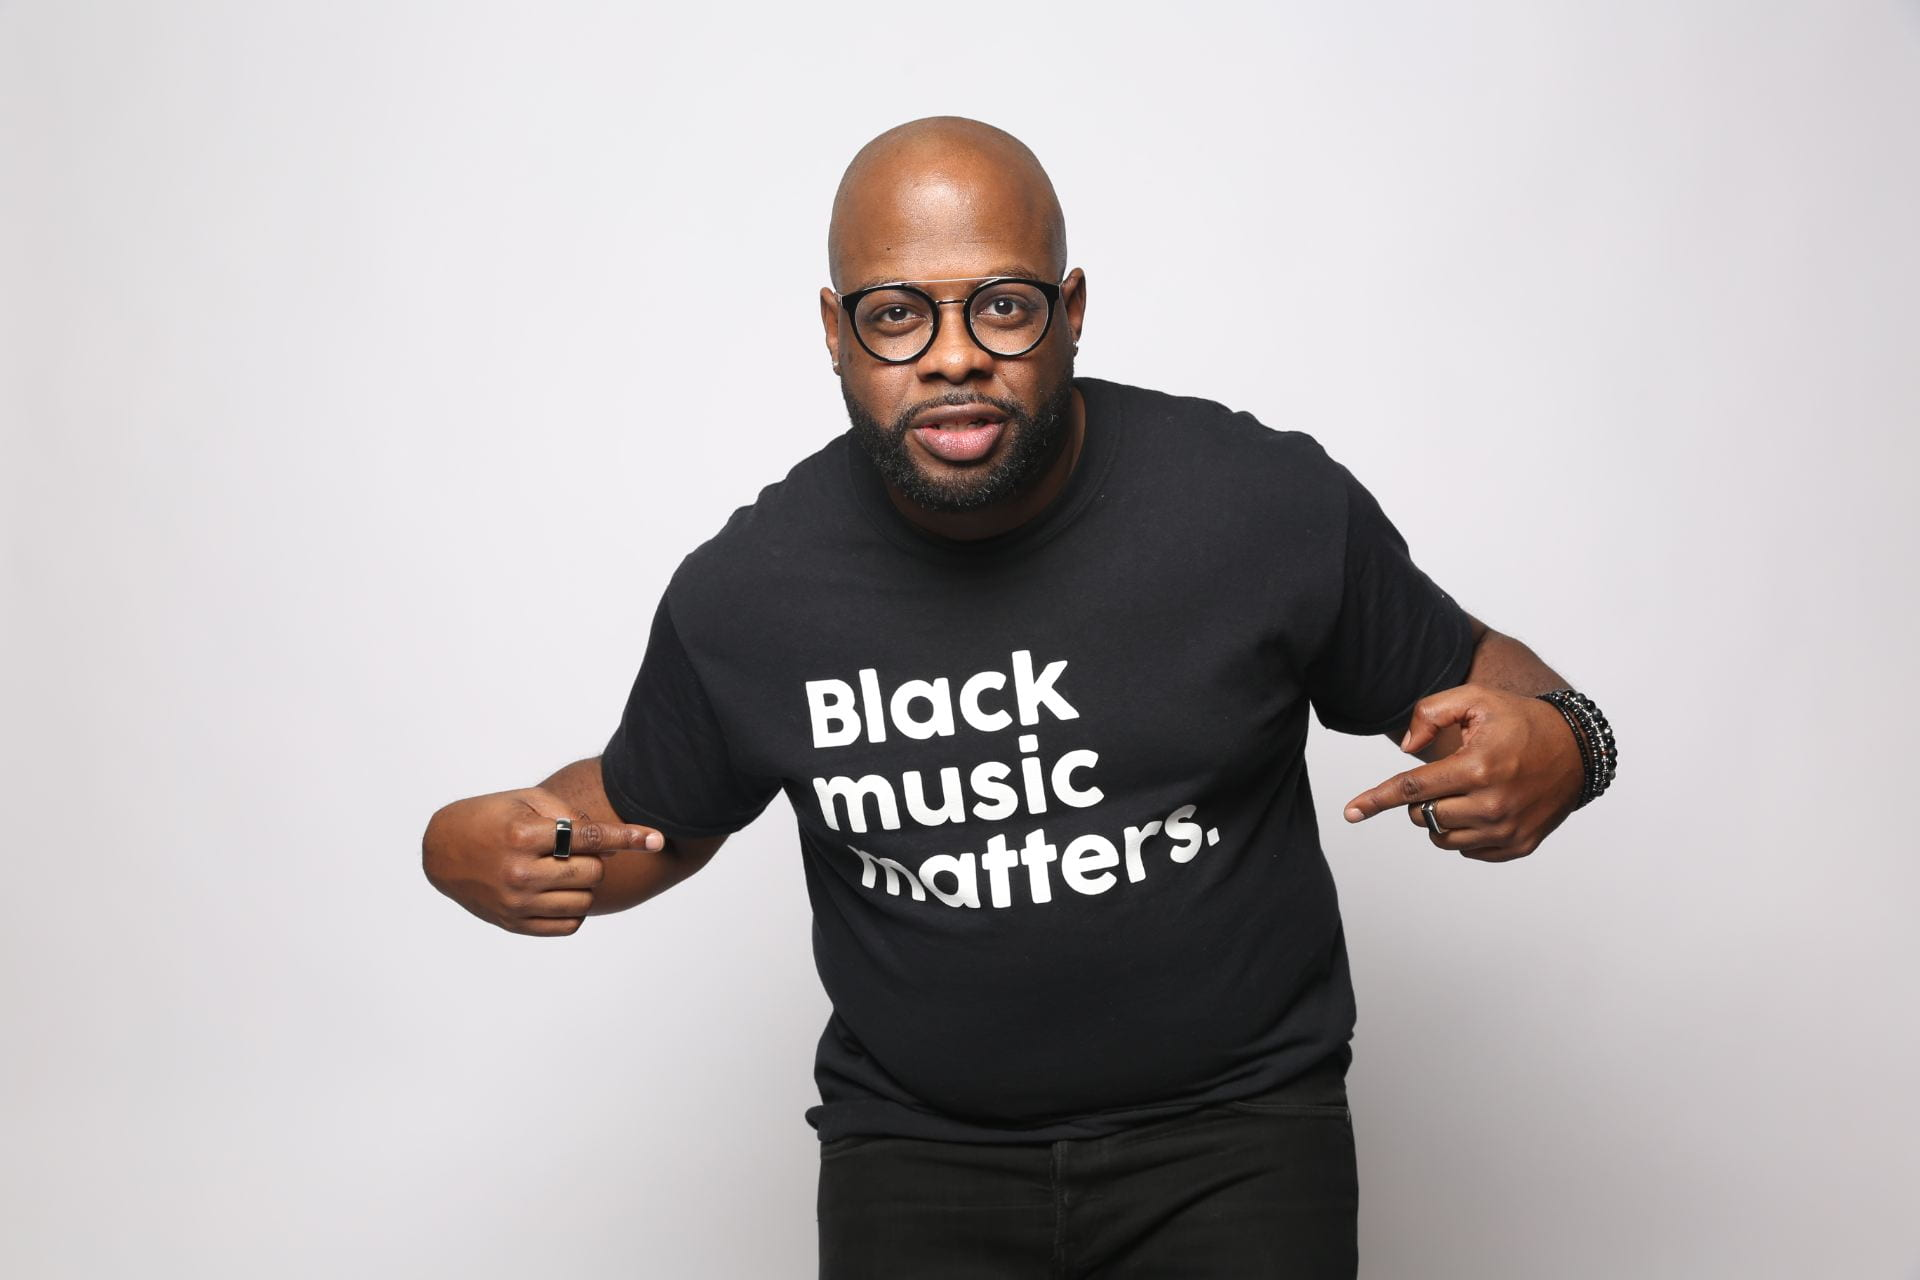 Picture of Adrian Dunn and Black Music Matters shirt